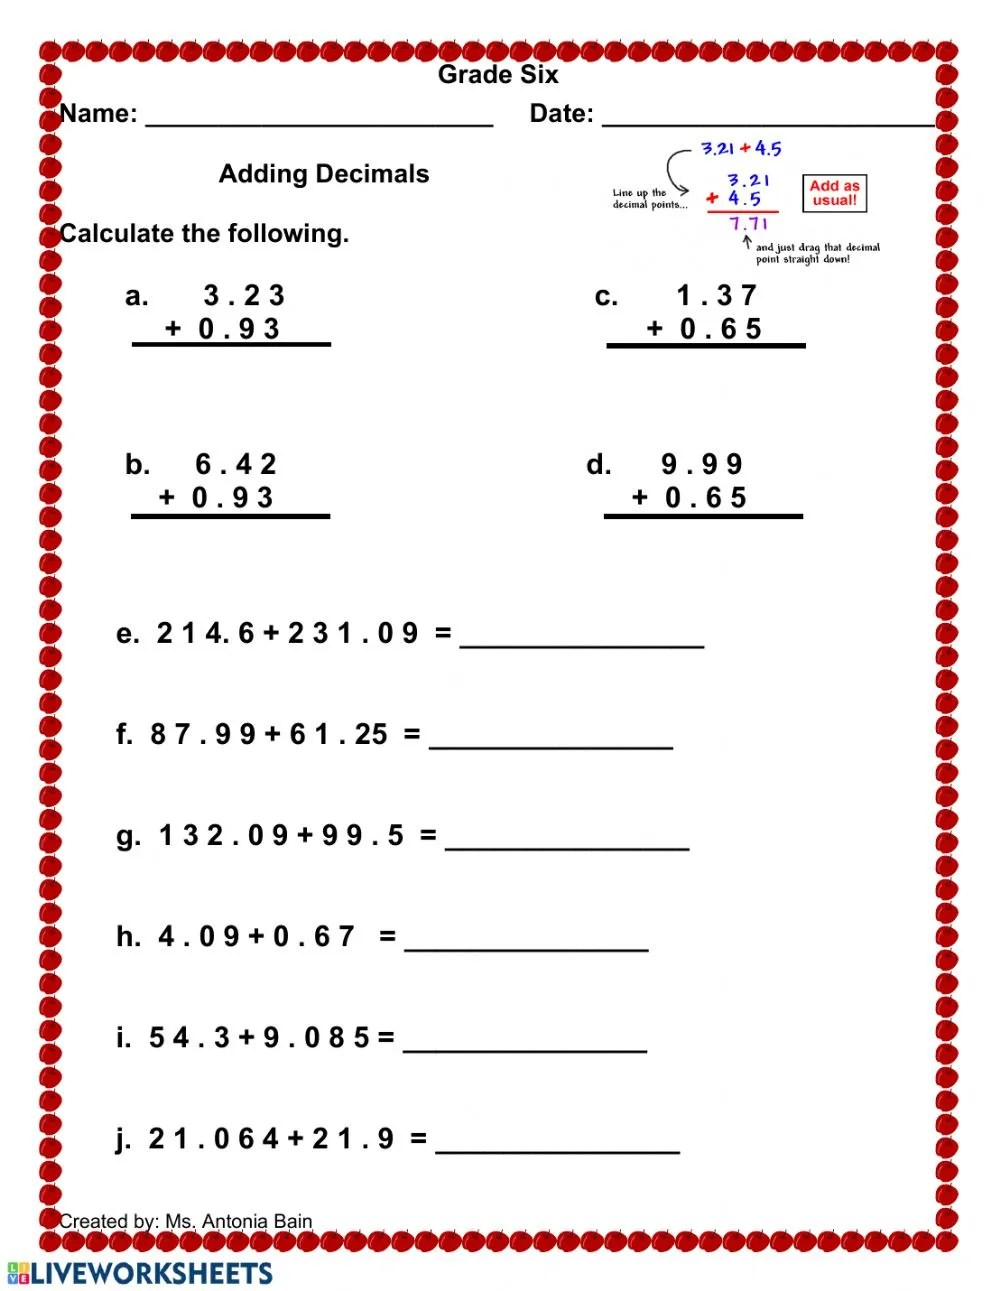 medium resolution of Adding Decimals worksheet